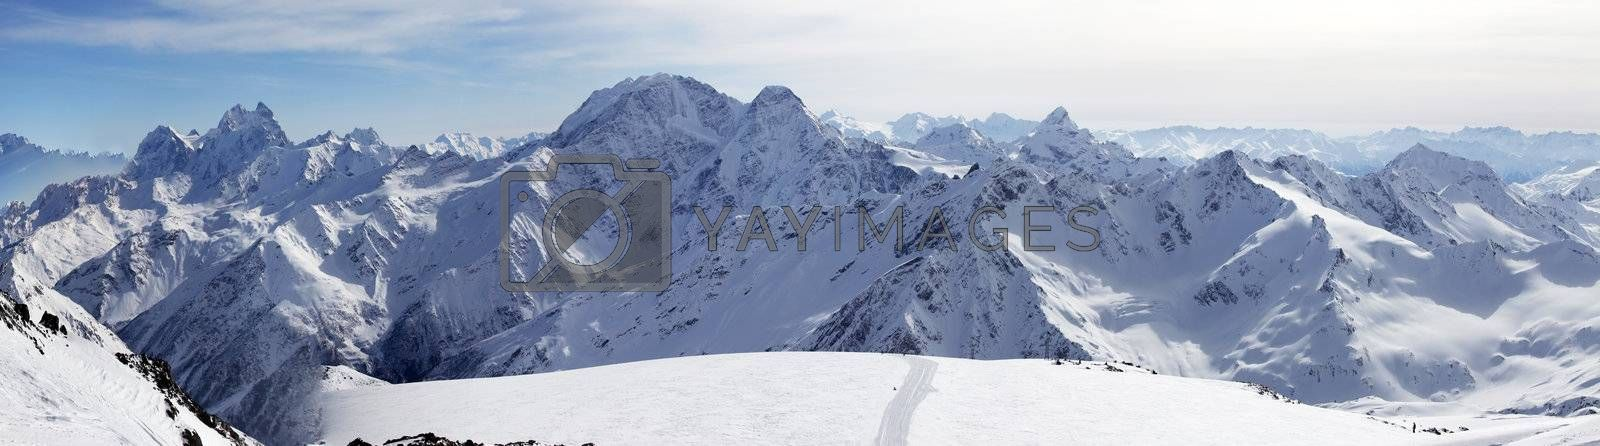 Russia. Caucasus. View on Elbrus Mount - the highest point of Europe from Cheget Mount. Panorama the review from 6 shots